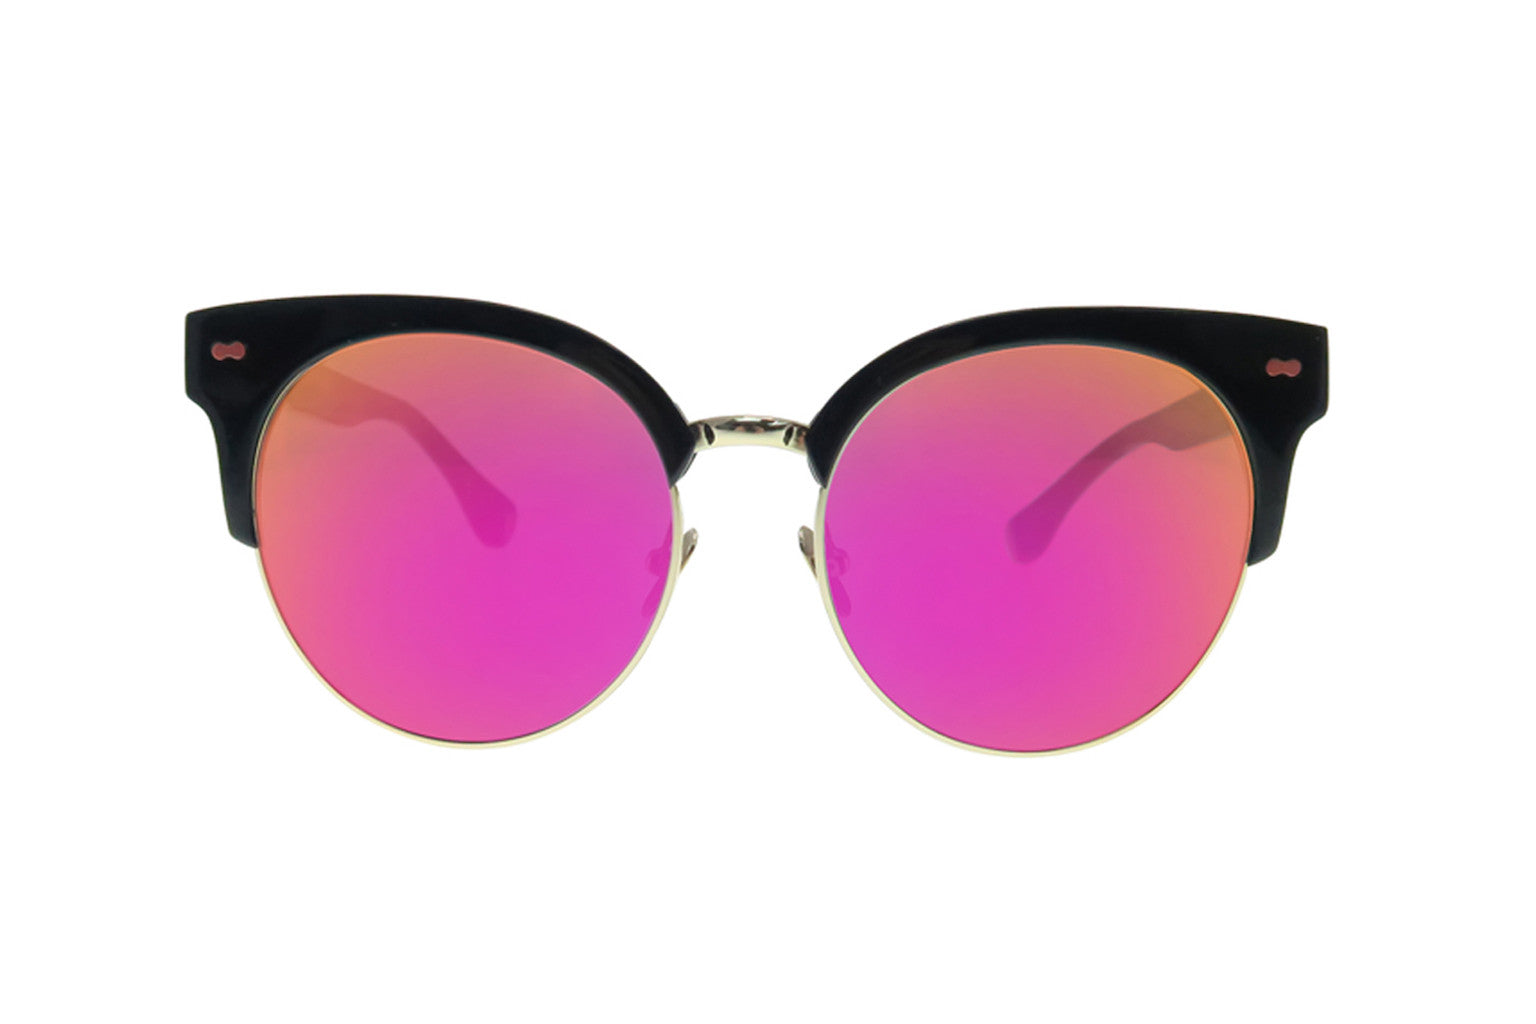 Pico 924 - Peppertint - Designer sunglasses